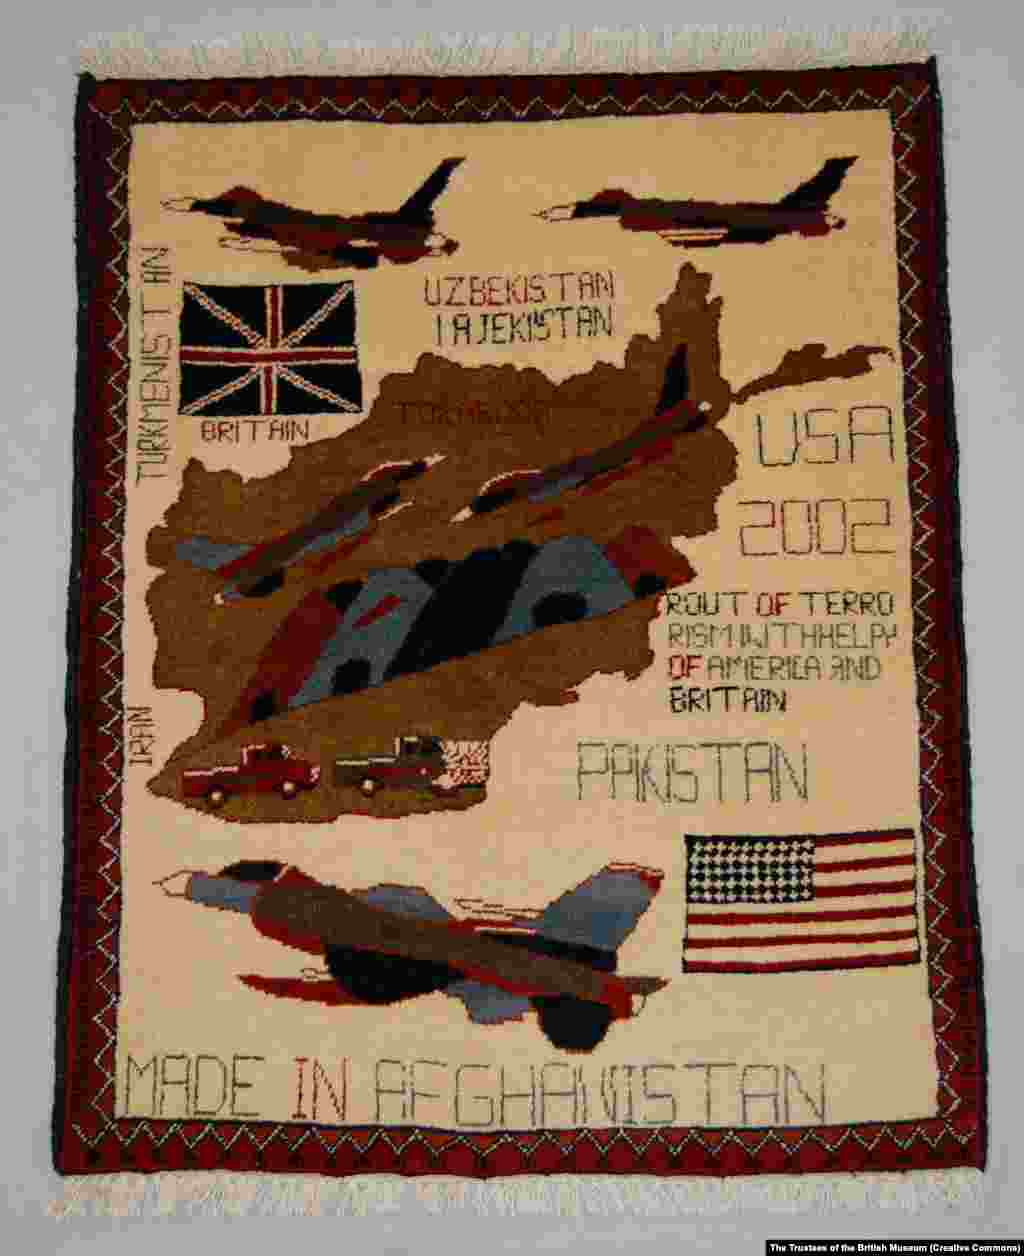 A war rug features the Tora Bora cave complex, where the U.S. military hunted unsuccessfully for Osama bin Laden in 2001.